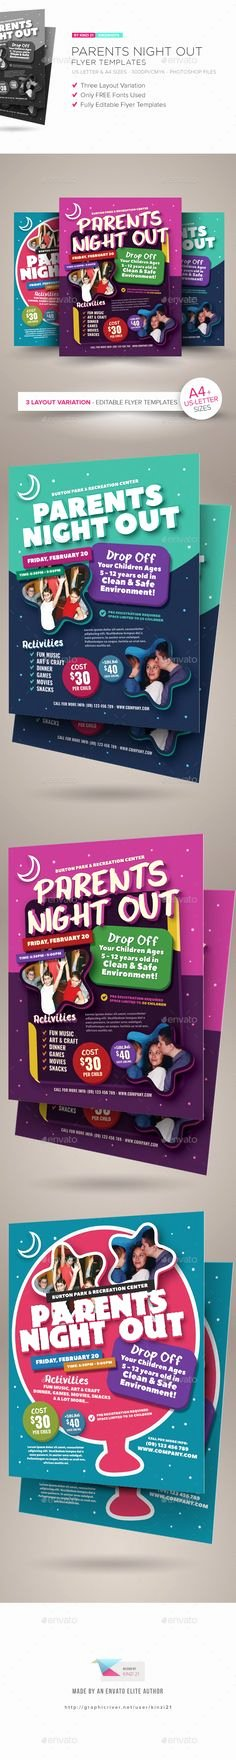 Parents Night Out Flyer Template Elegant Family Cookout event Flyer Poster Template